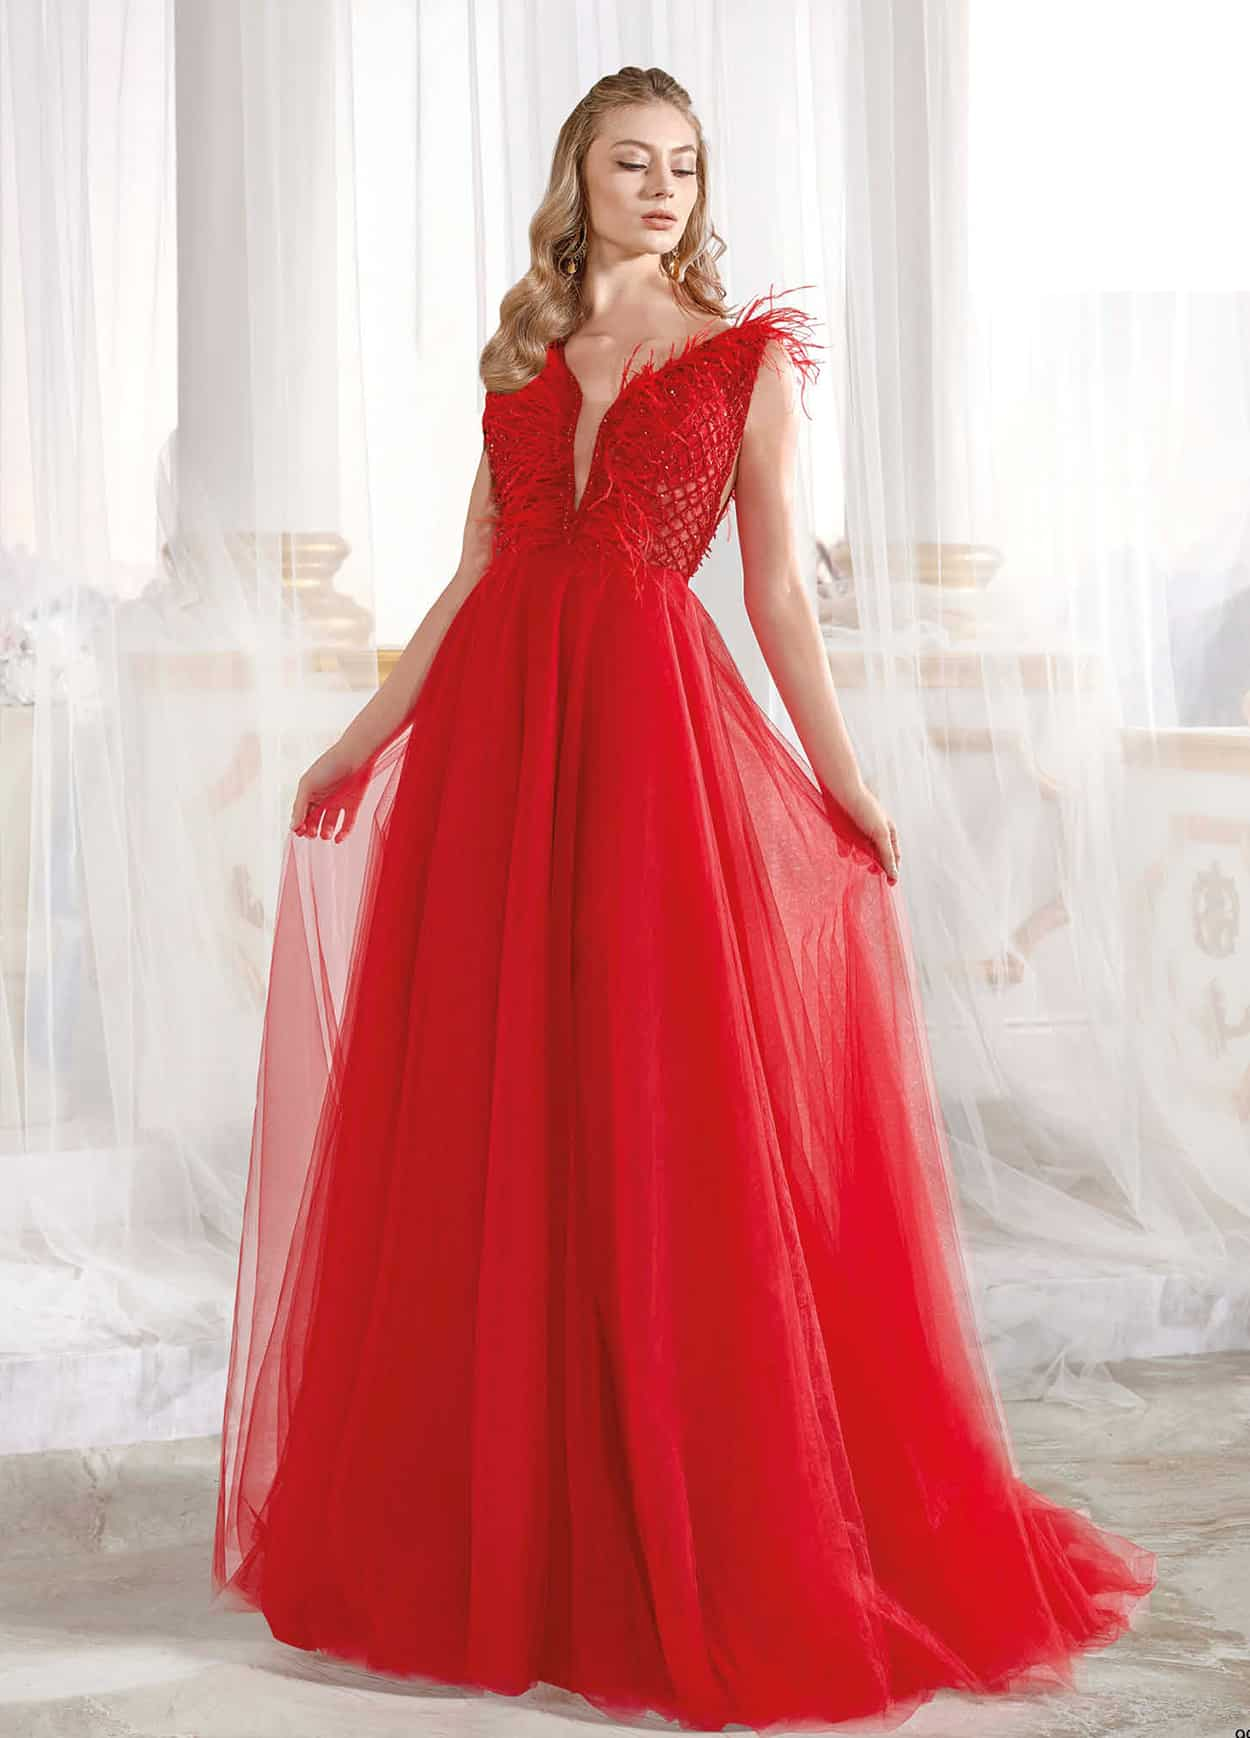 e1681f25bde Ligt Red Prom Dress V Embellished Neck And Top Detail Soft Drape Maxi Gown  ⋆ Sultan Dress Ottoman Caftan